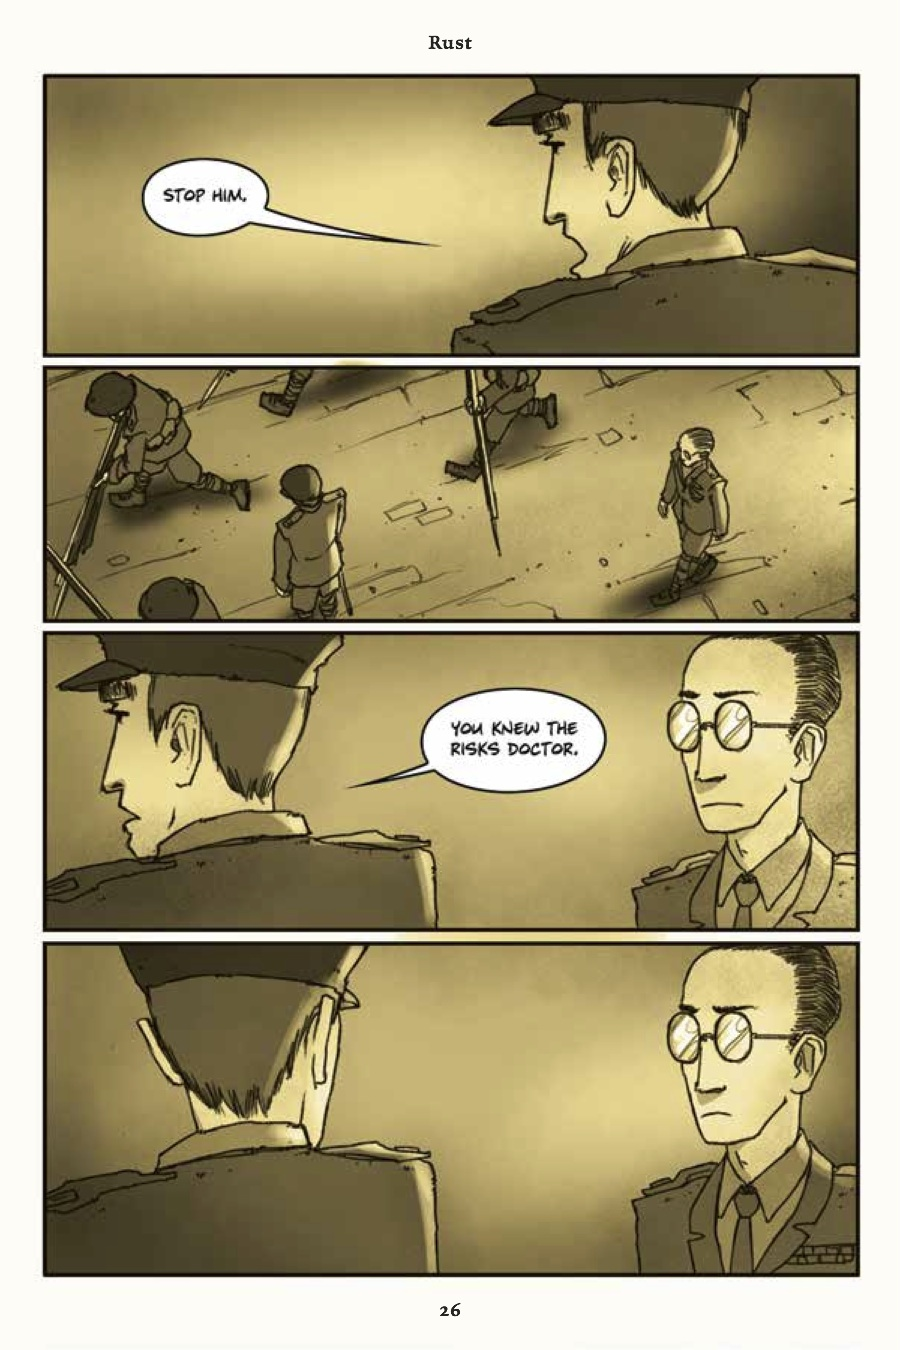 Rust Vol. 3 Preview Pg. 4